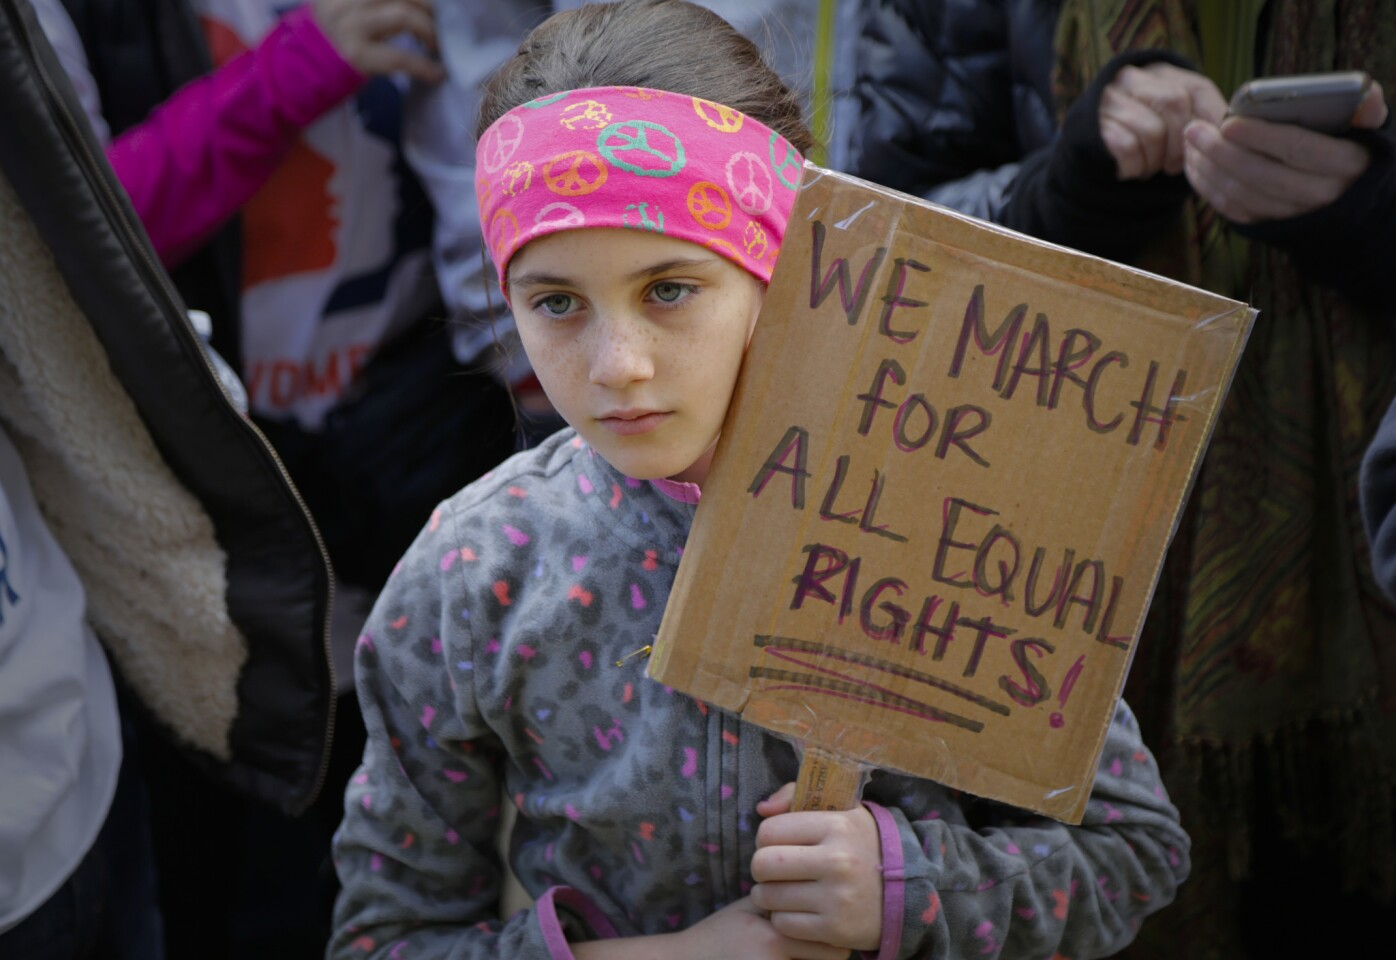 Samantha Cross was one of the thousands who participated in the San Diego Women's March that started at Civic Center Plaza in Downtown San Diego and finished at the San Diego County Administration Center.